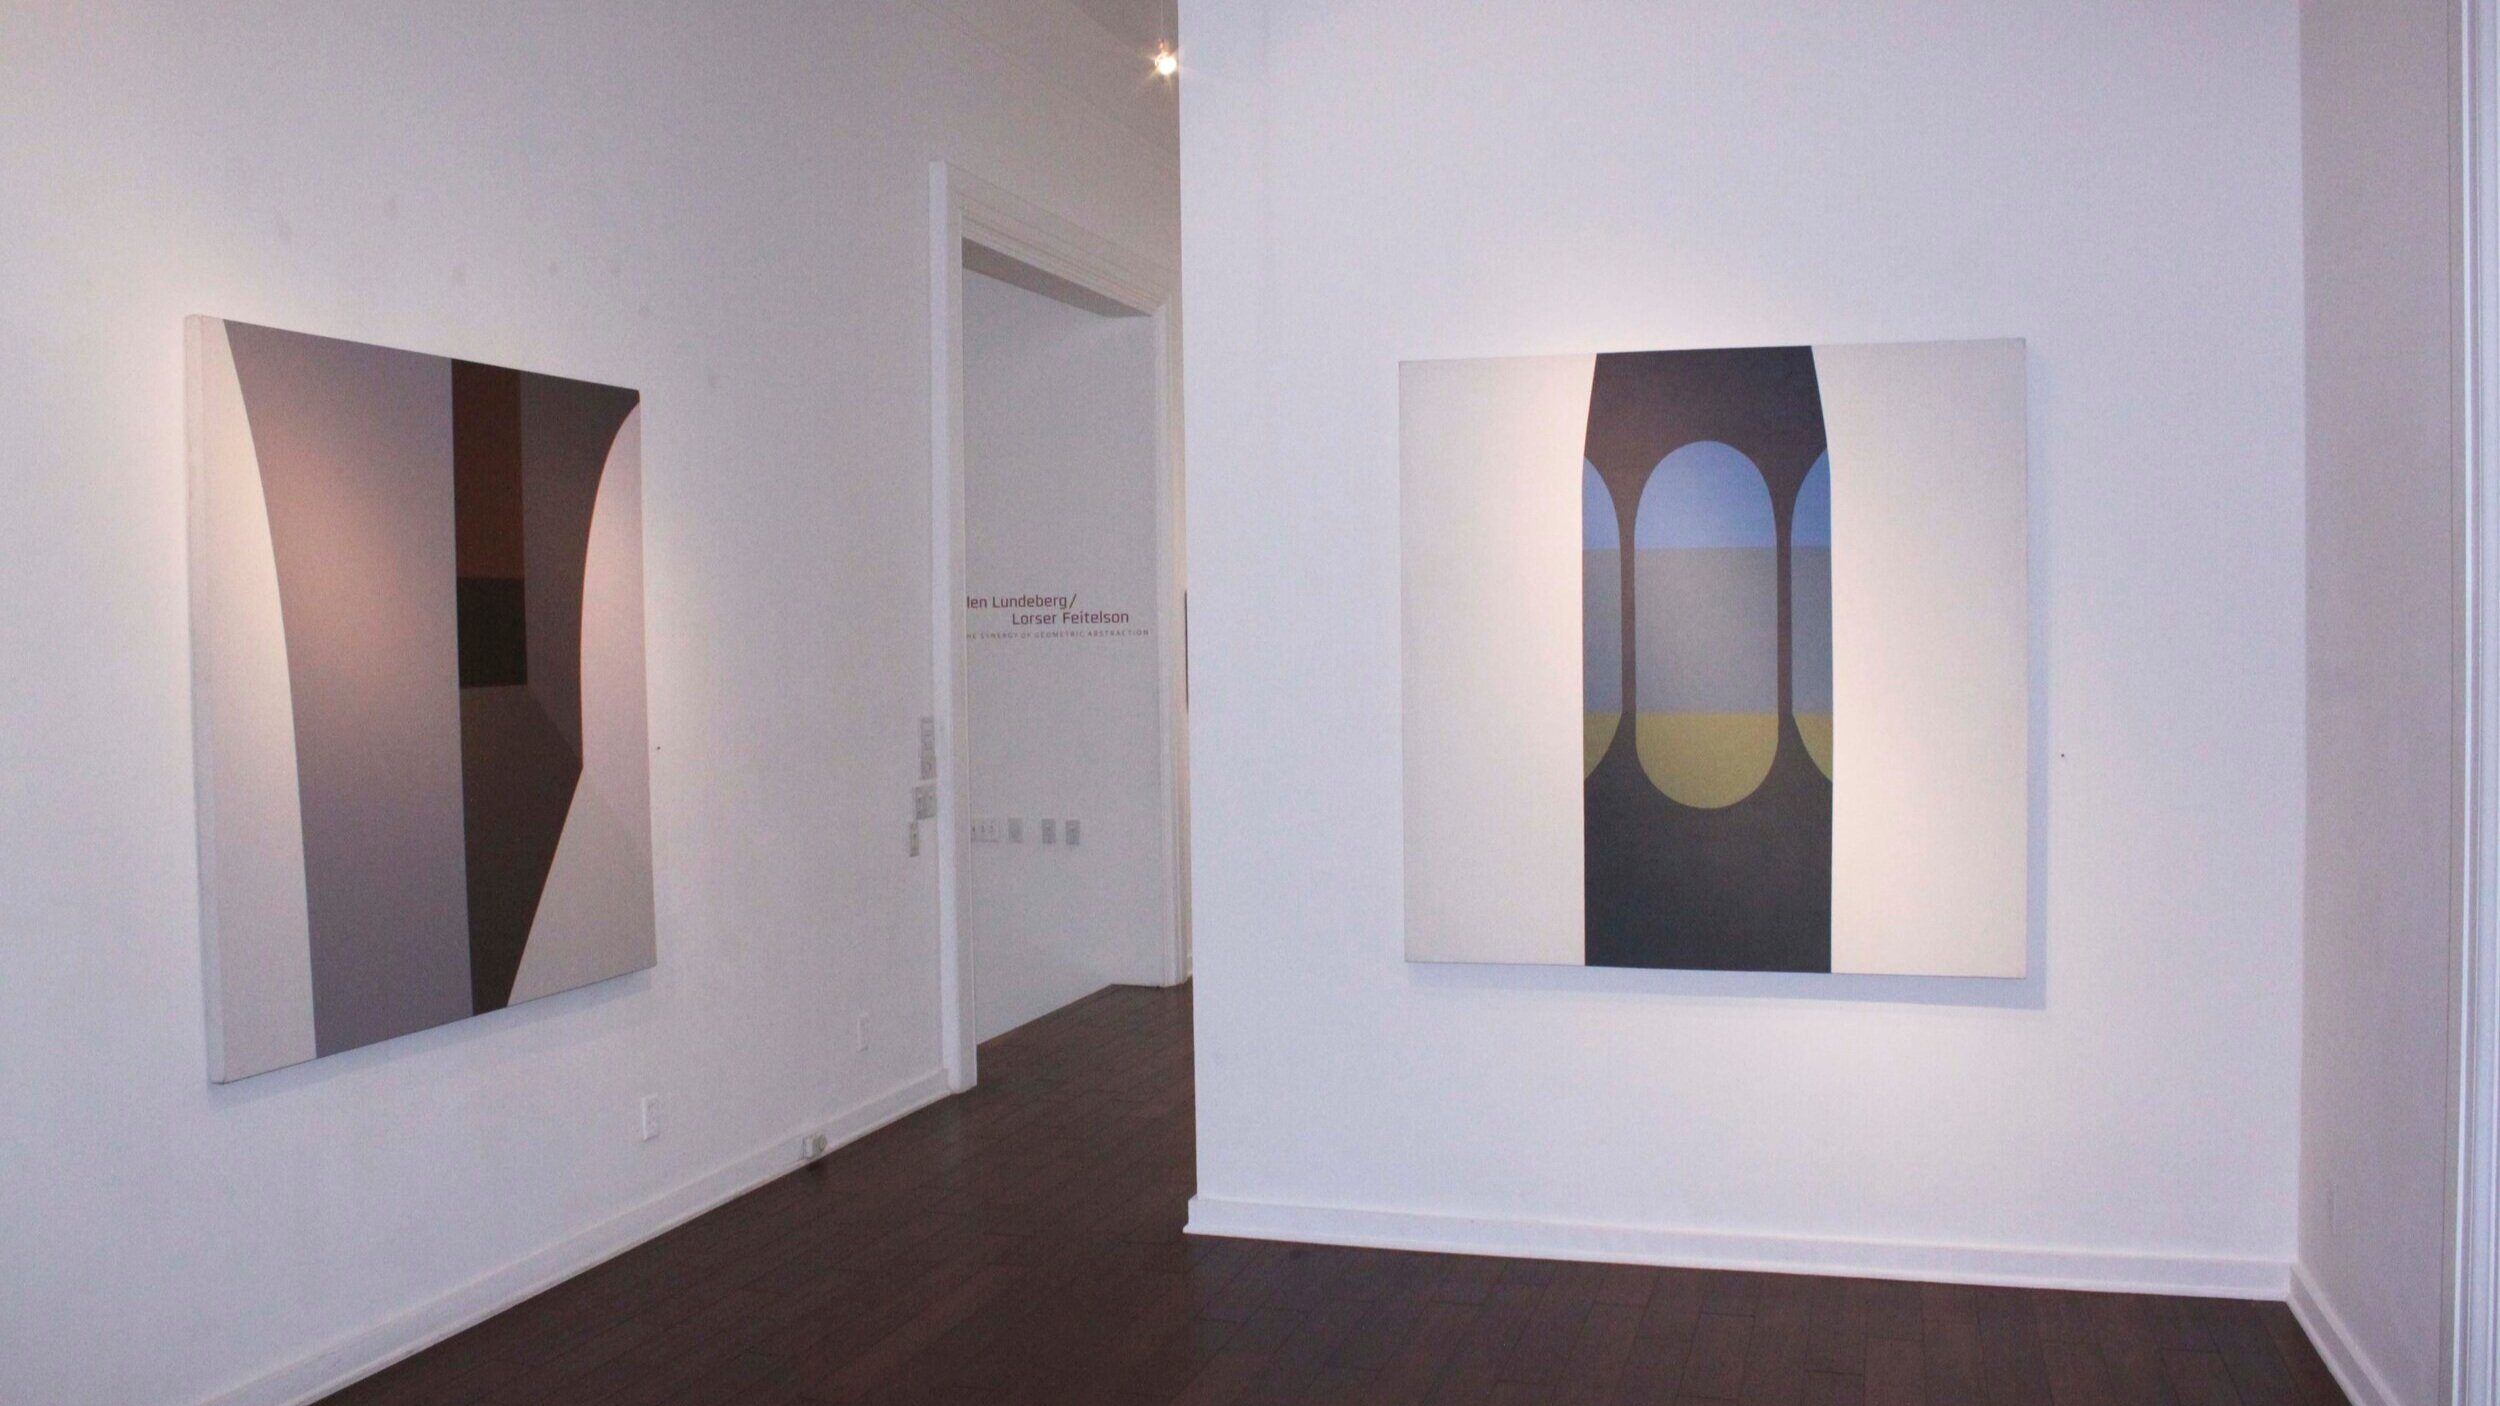 Helen Lundeberg/Lorser Feitelson and the Synergy of Geometric Abstraction , Louis Stern Fine Arts, 2014